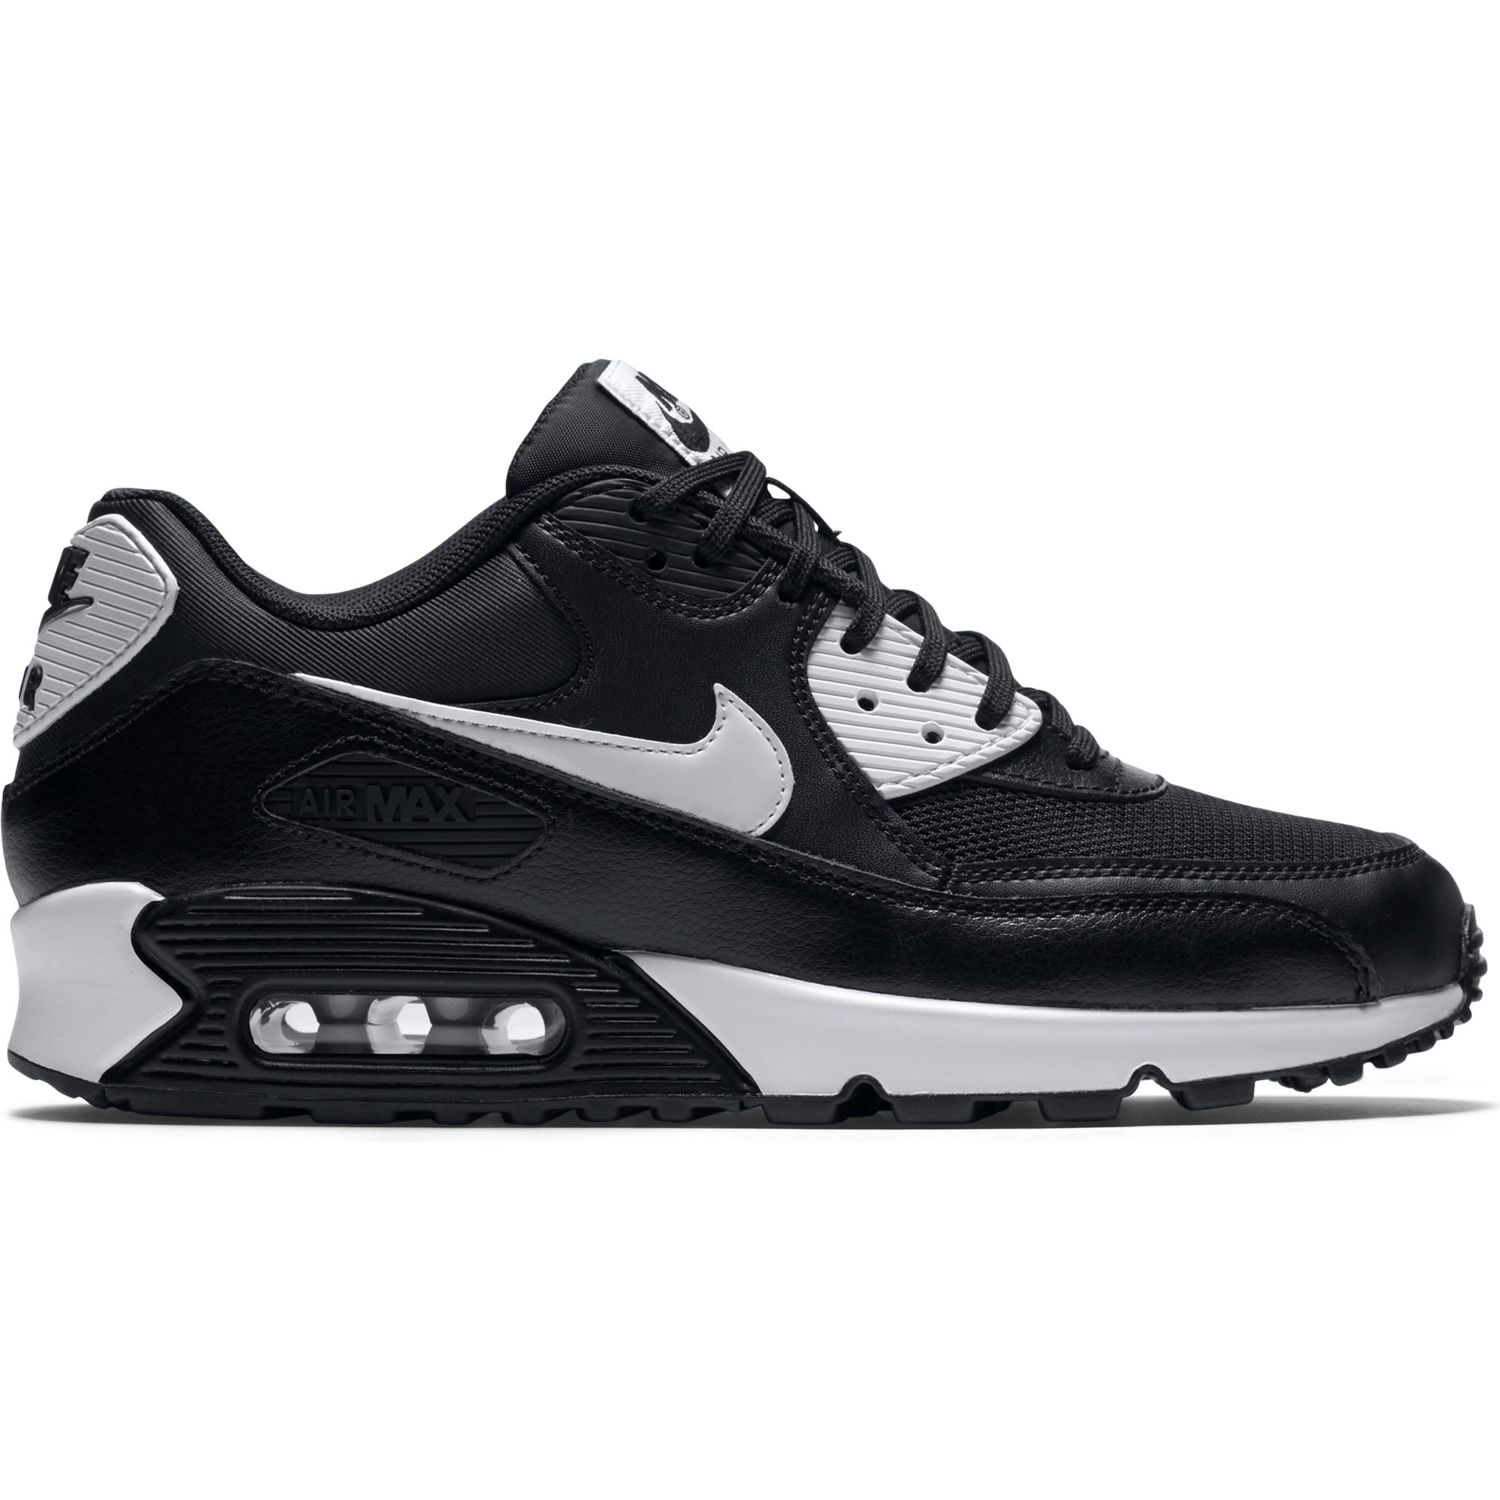 Nike Air Max 90 Essential Black/White 616730 023